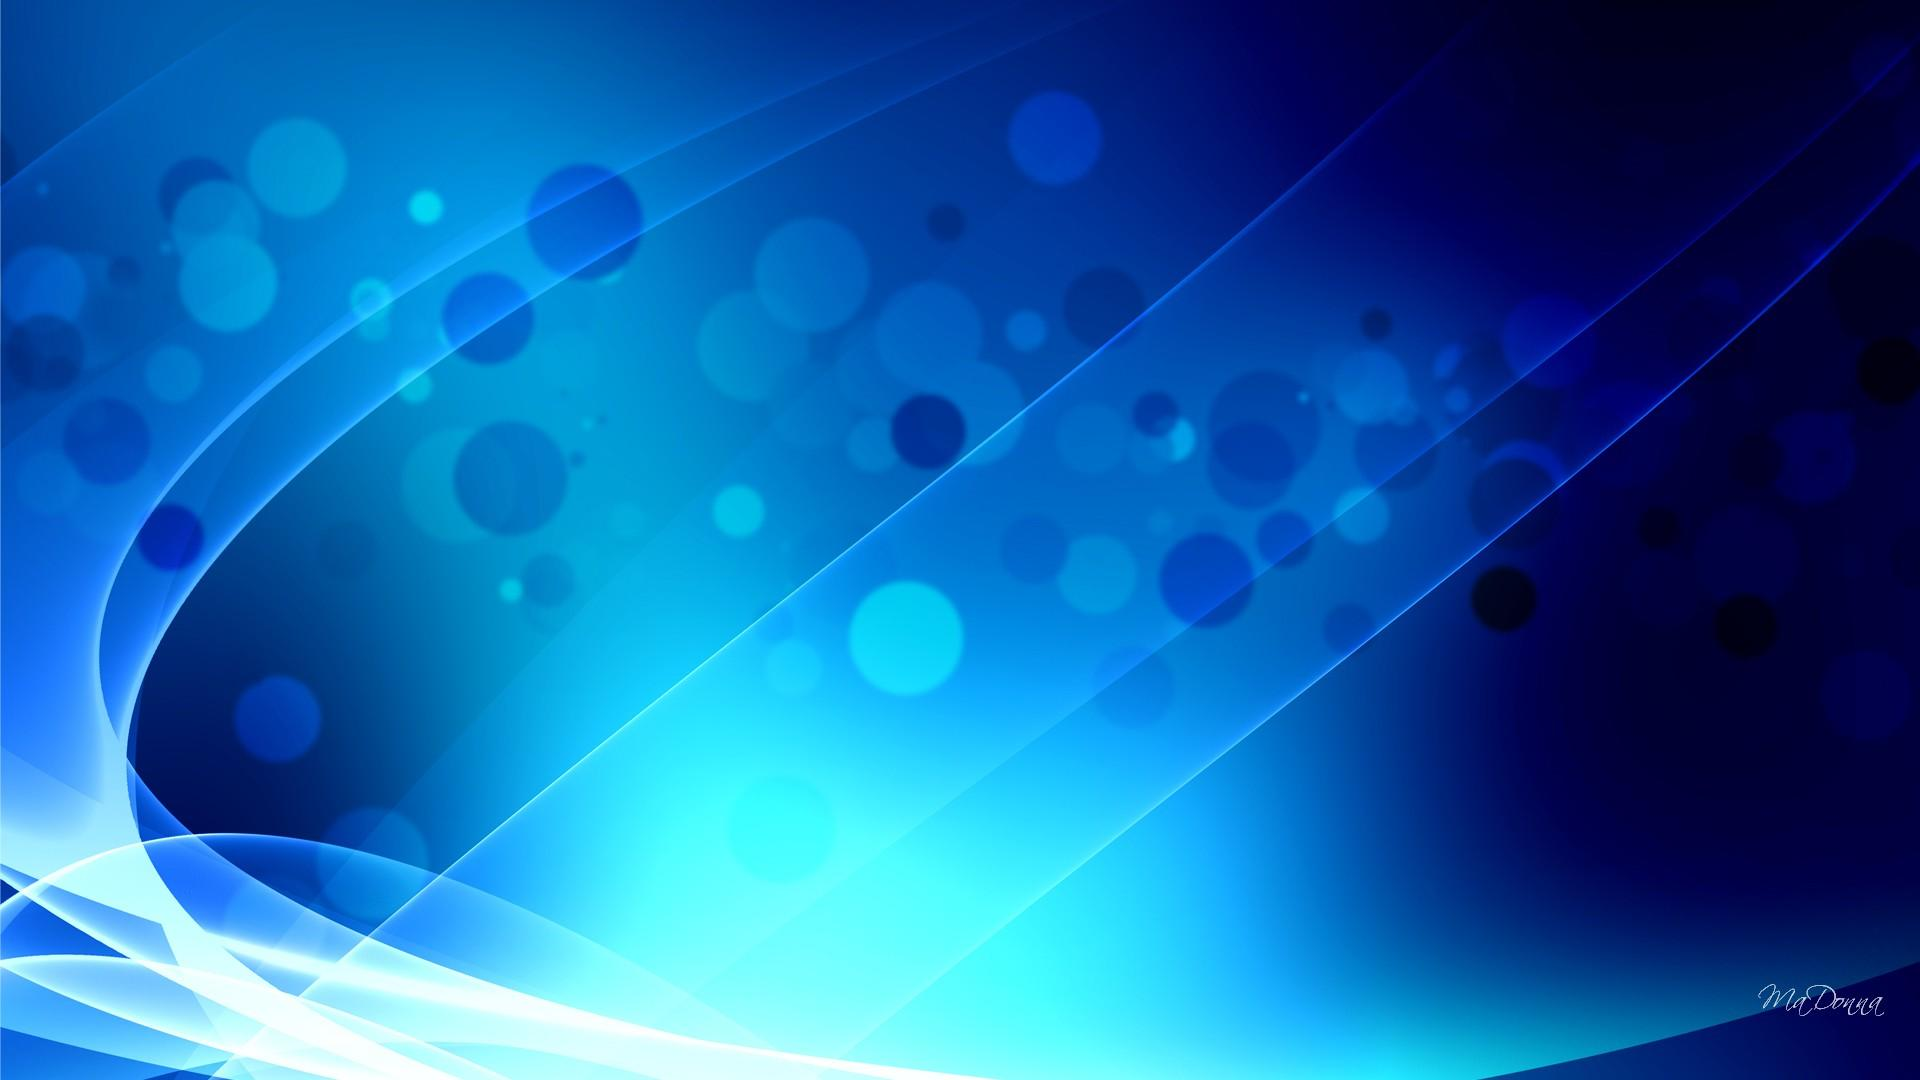 Hd Blue Abstract Wonder Wallpaper